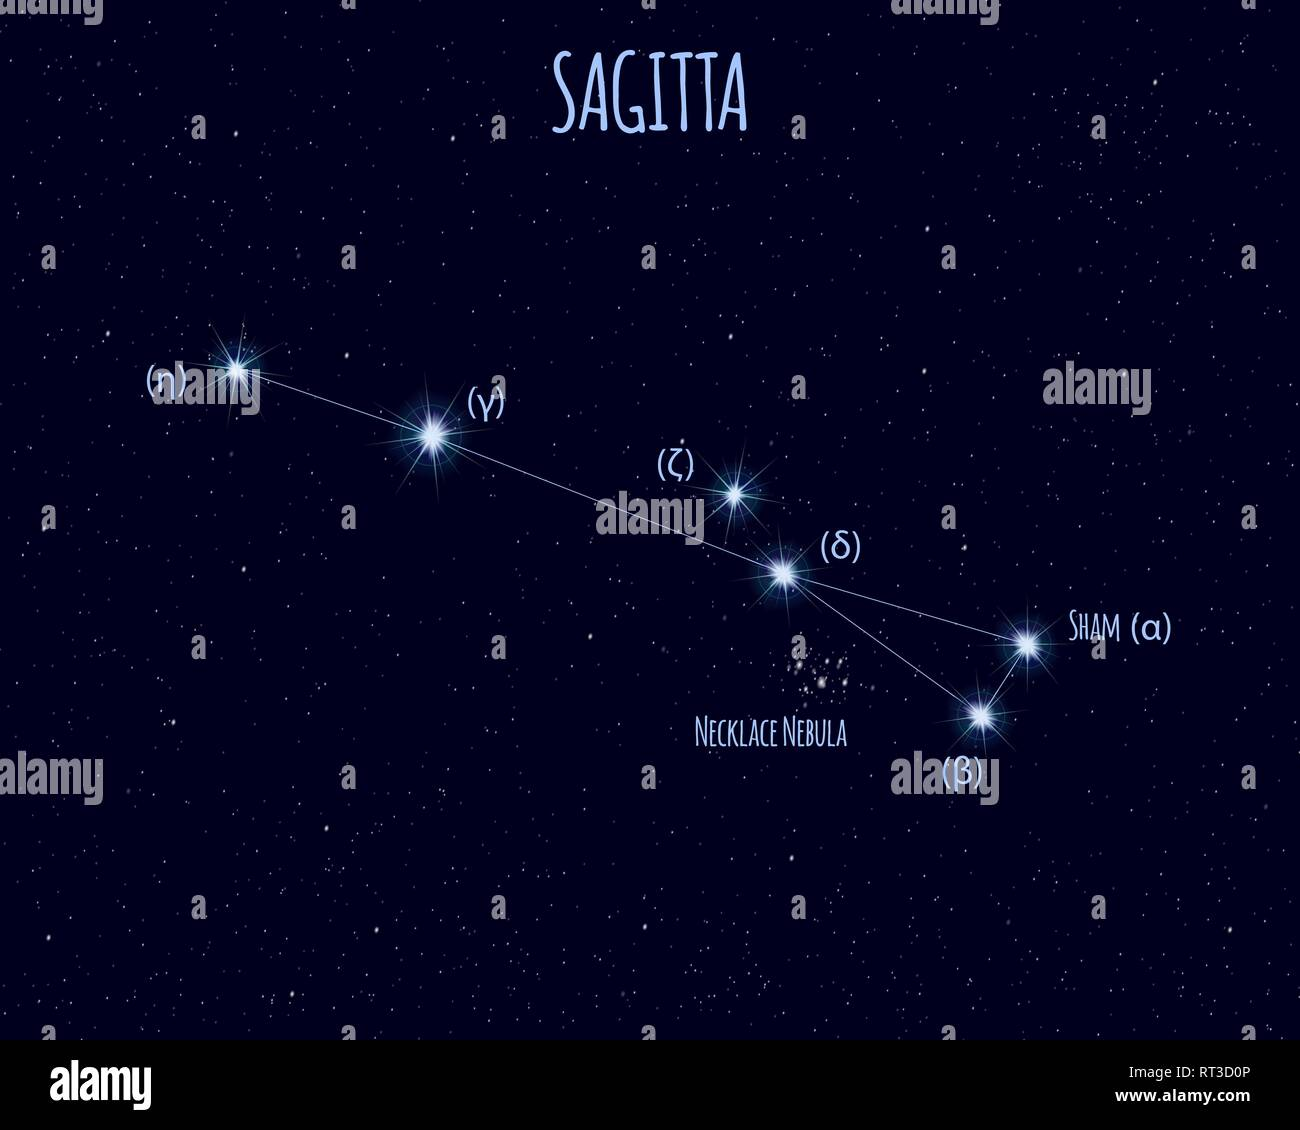 Sagitta (The Arrow) constellation, vector illustration with the names of basic stars against the starry sky - Stock Image